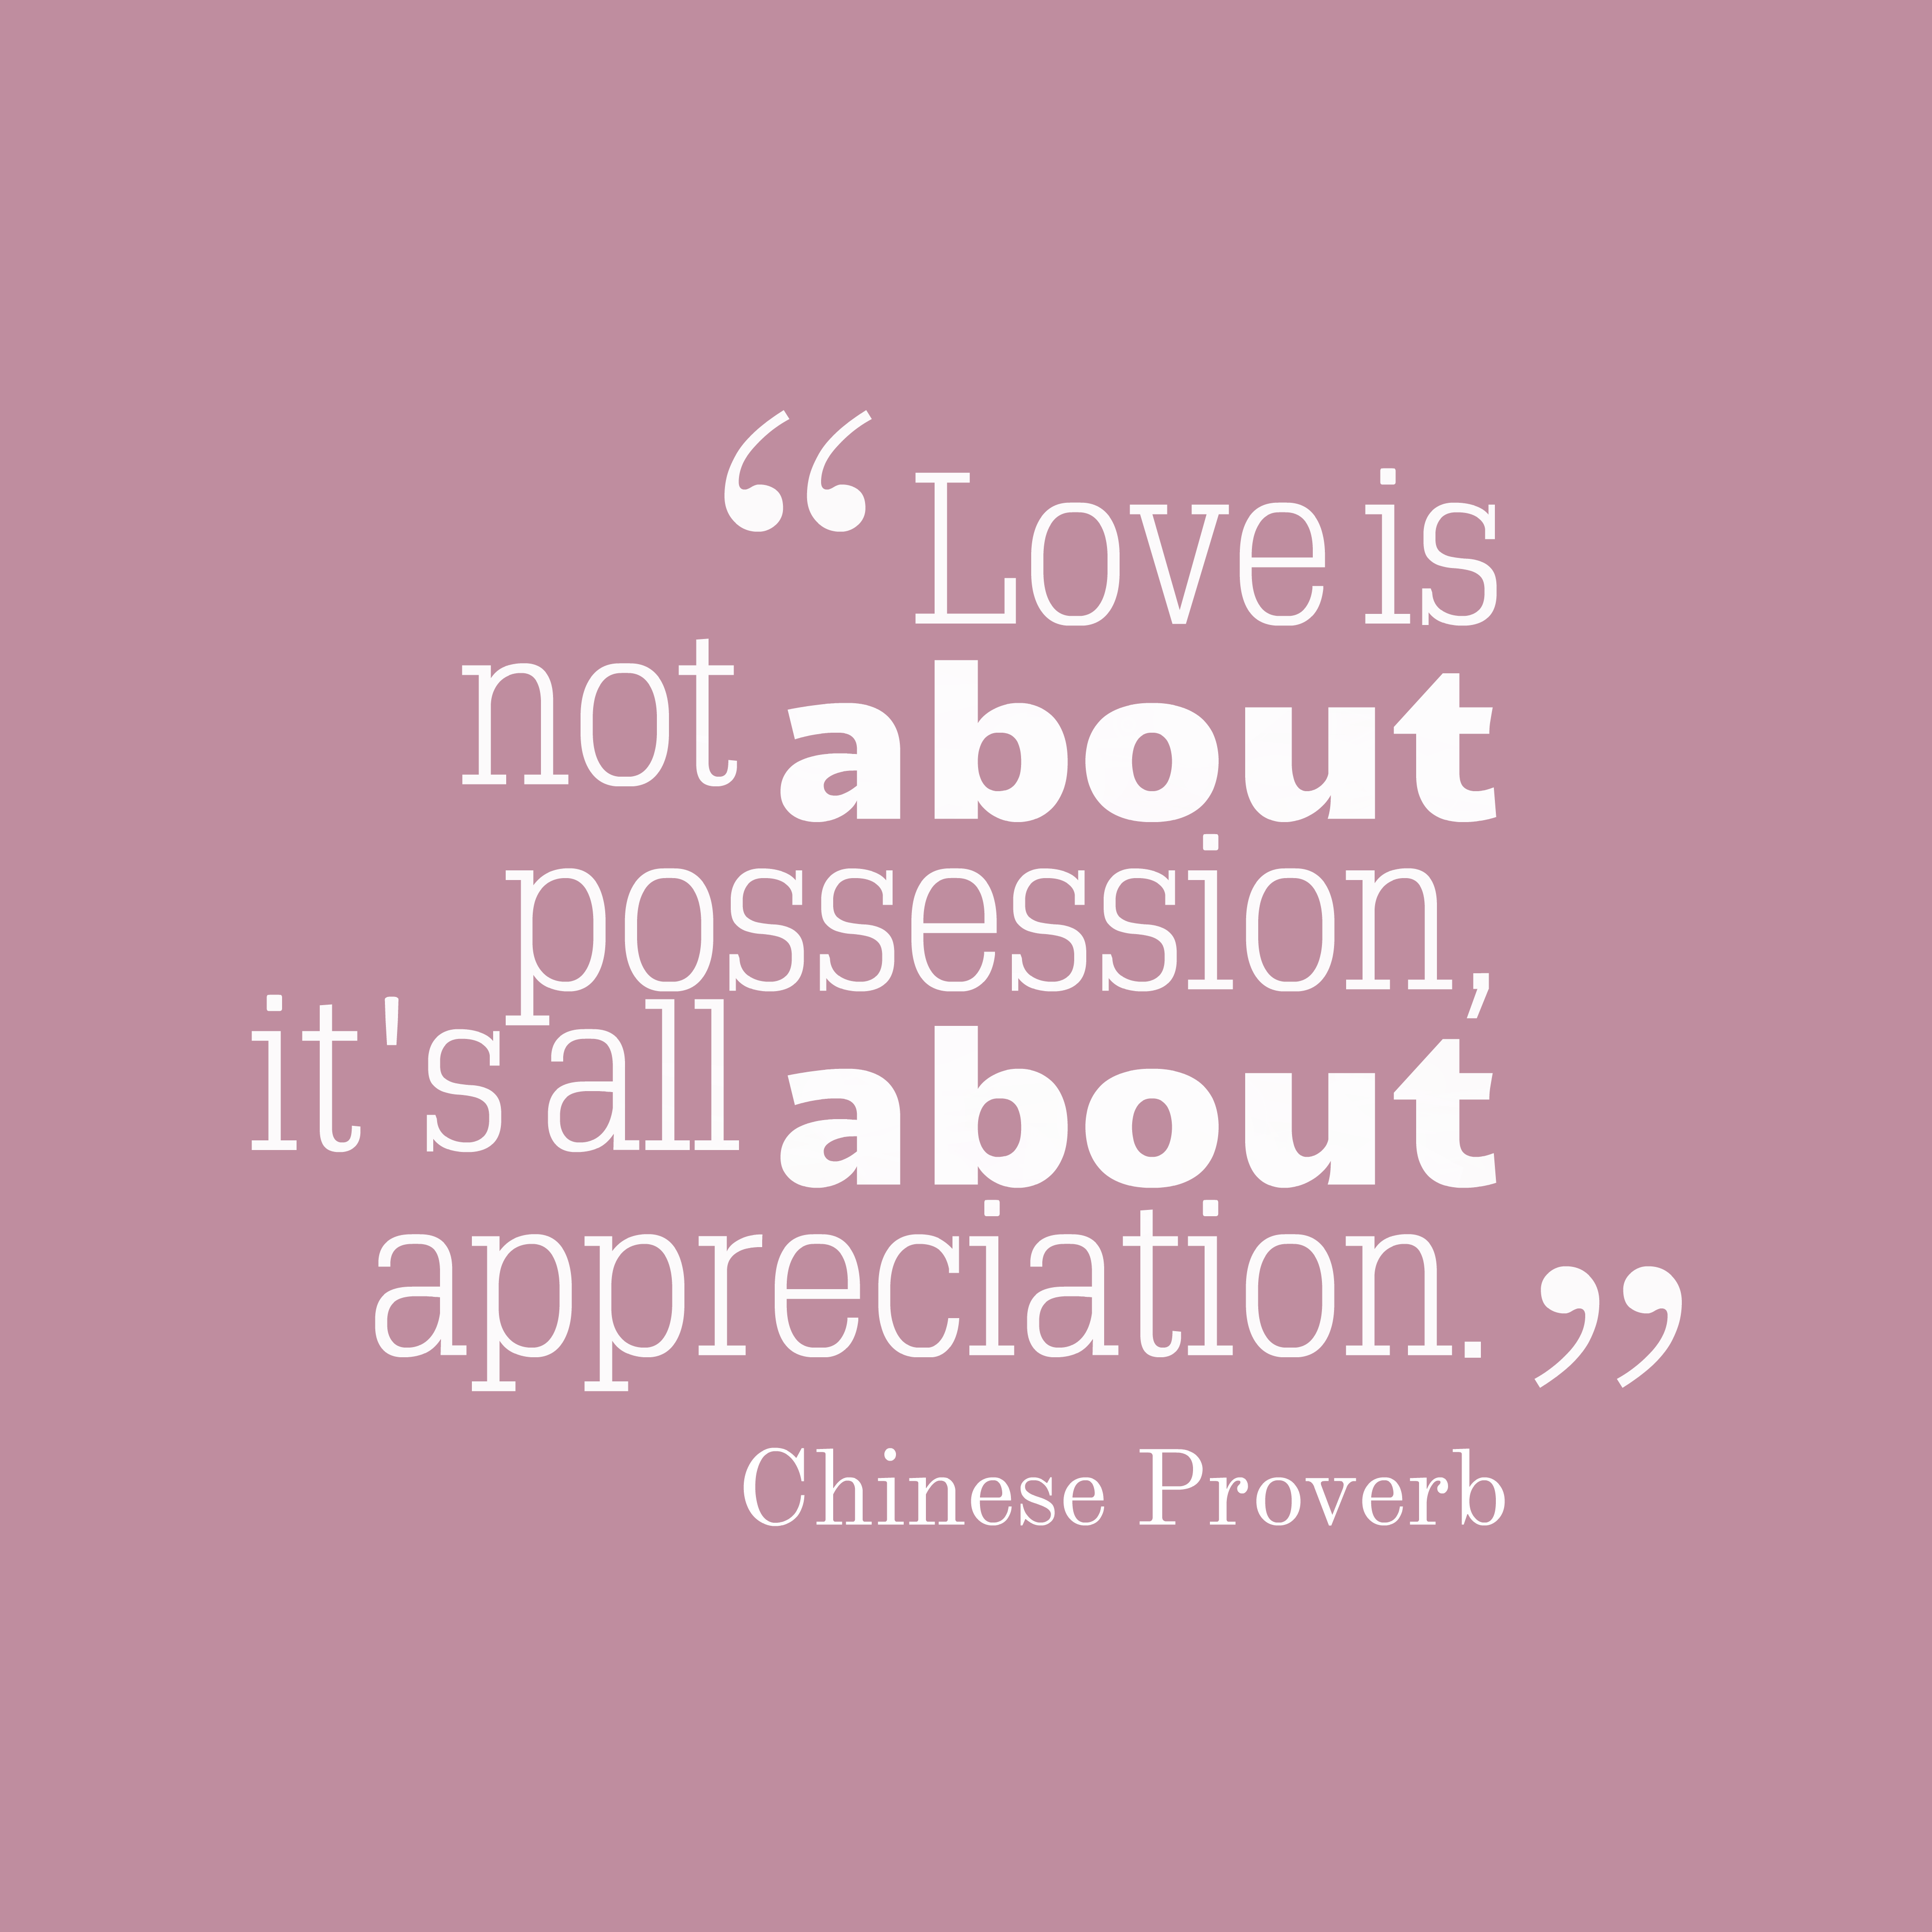 Chinese Proverb About Love